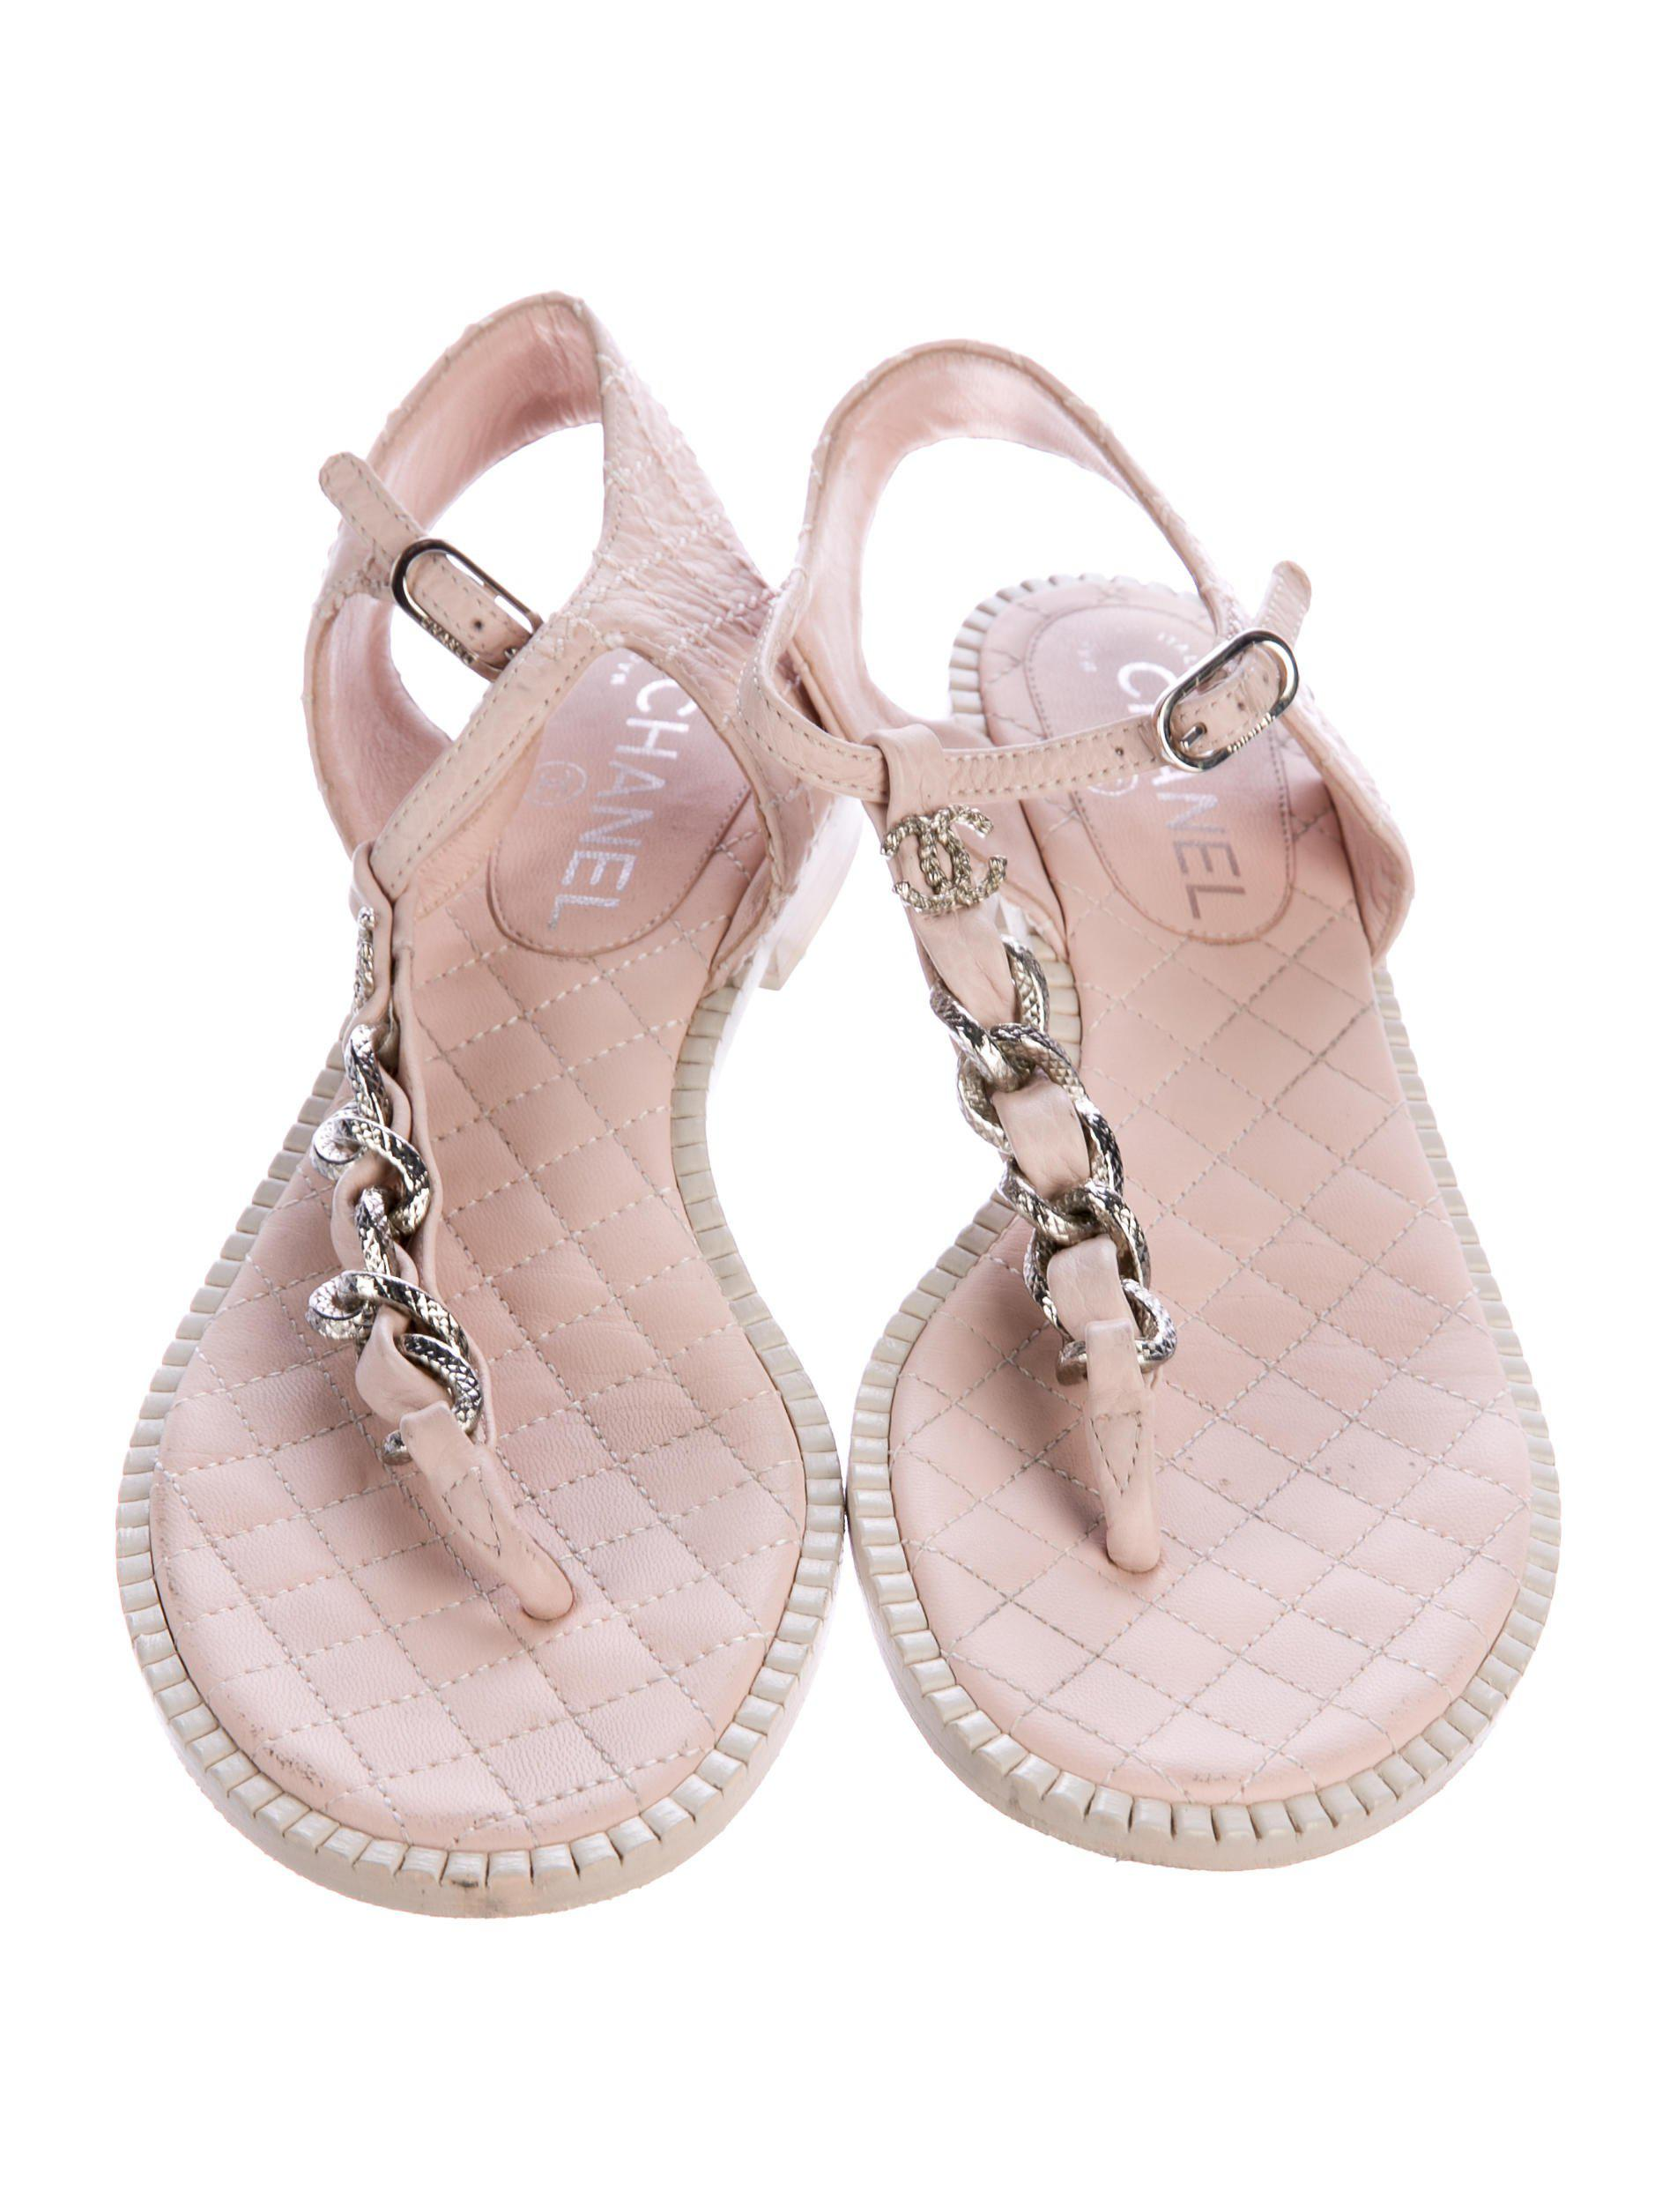 6be72d3c457071 Lyst - Chanel 2015 Cc Chain-link Sandals Pink in Metallic